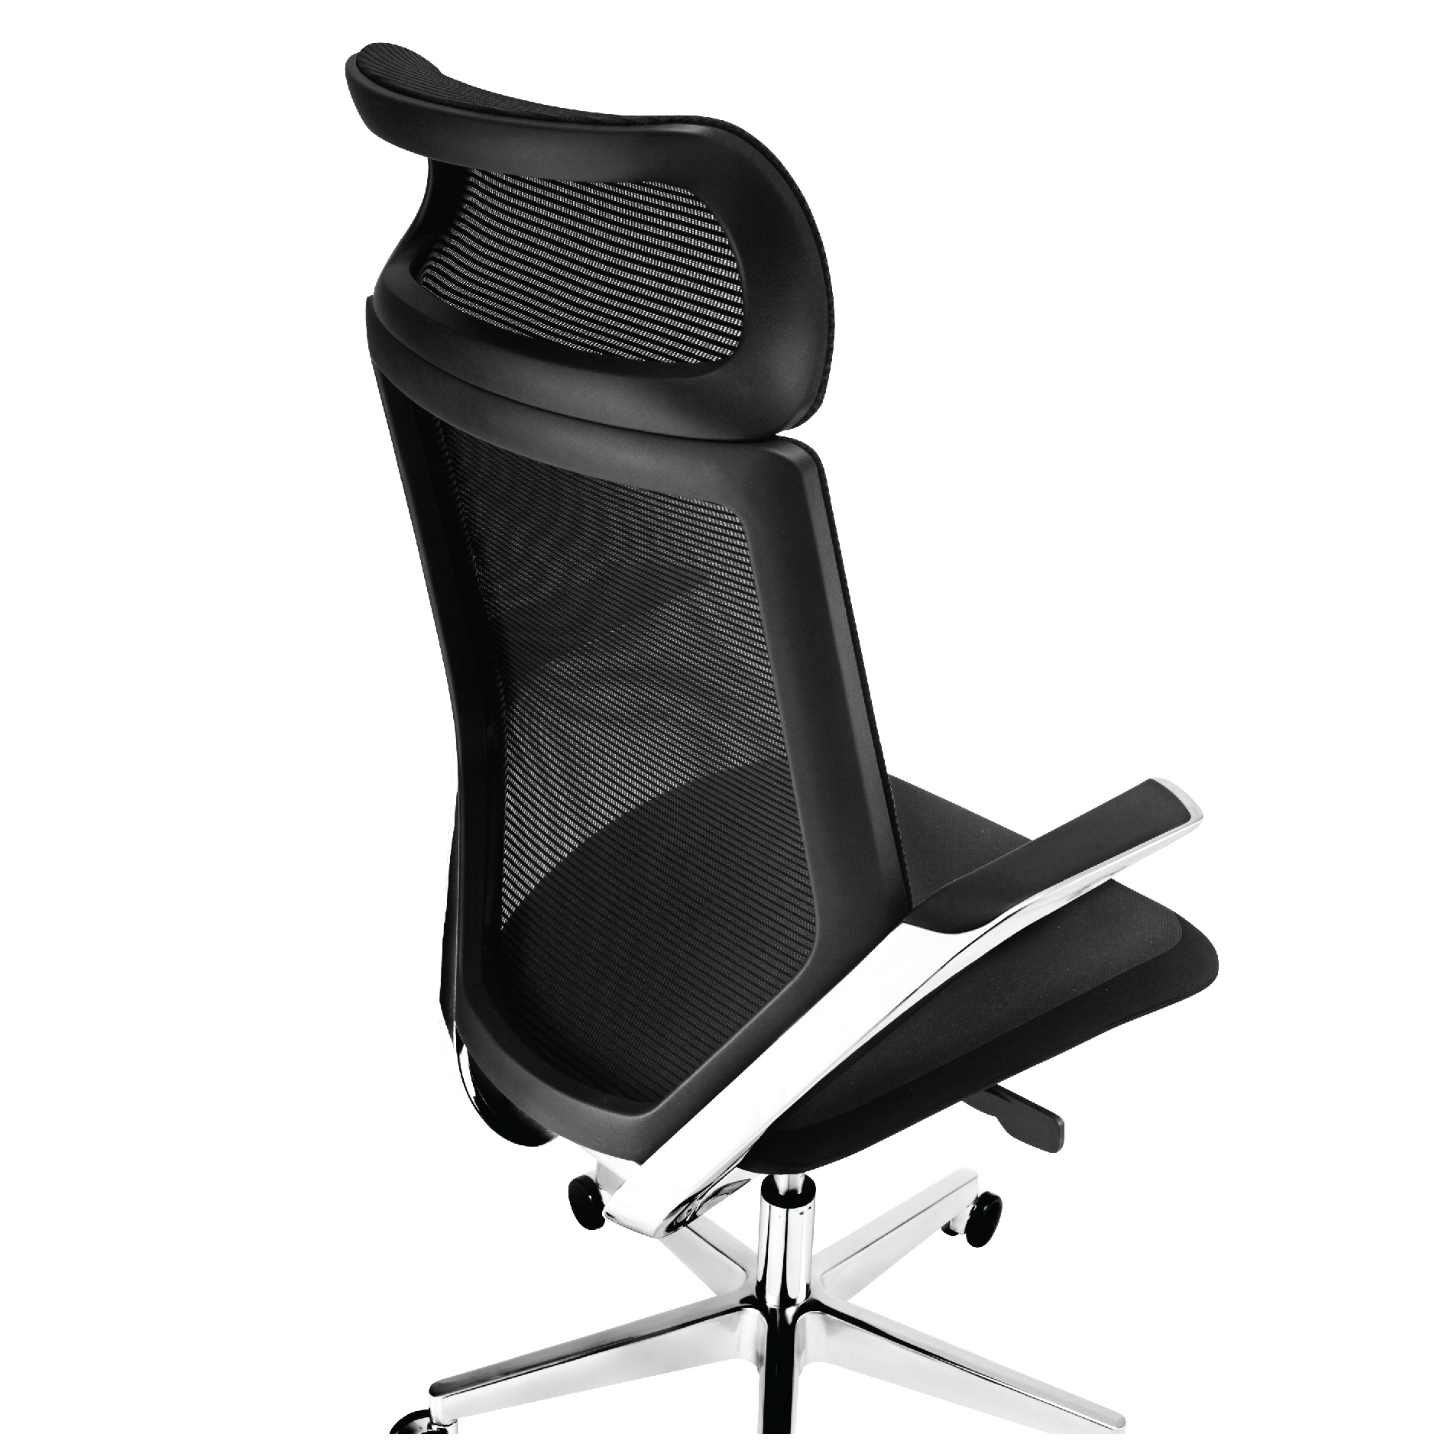 Home Office Chair Model - F1M  Ergonomic Office Chair